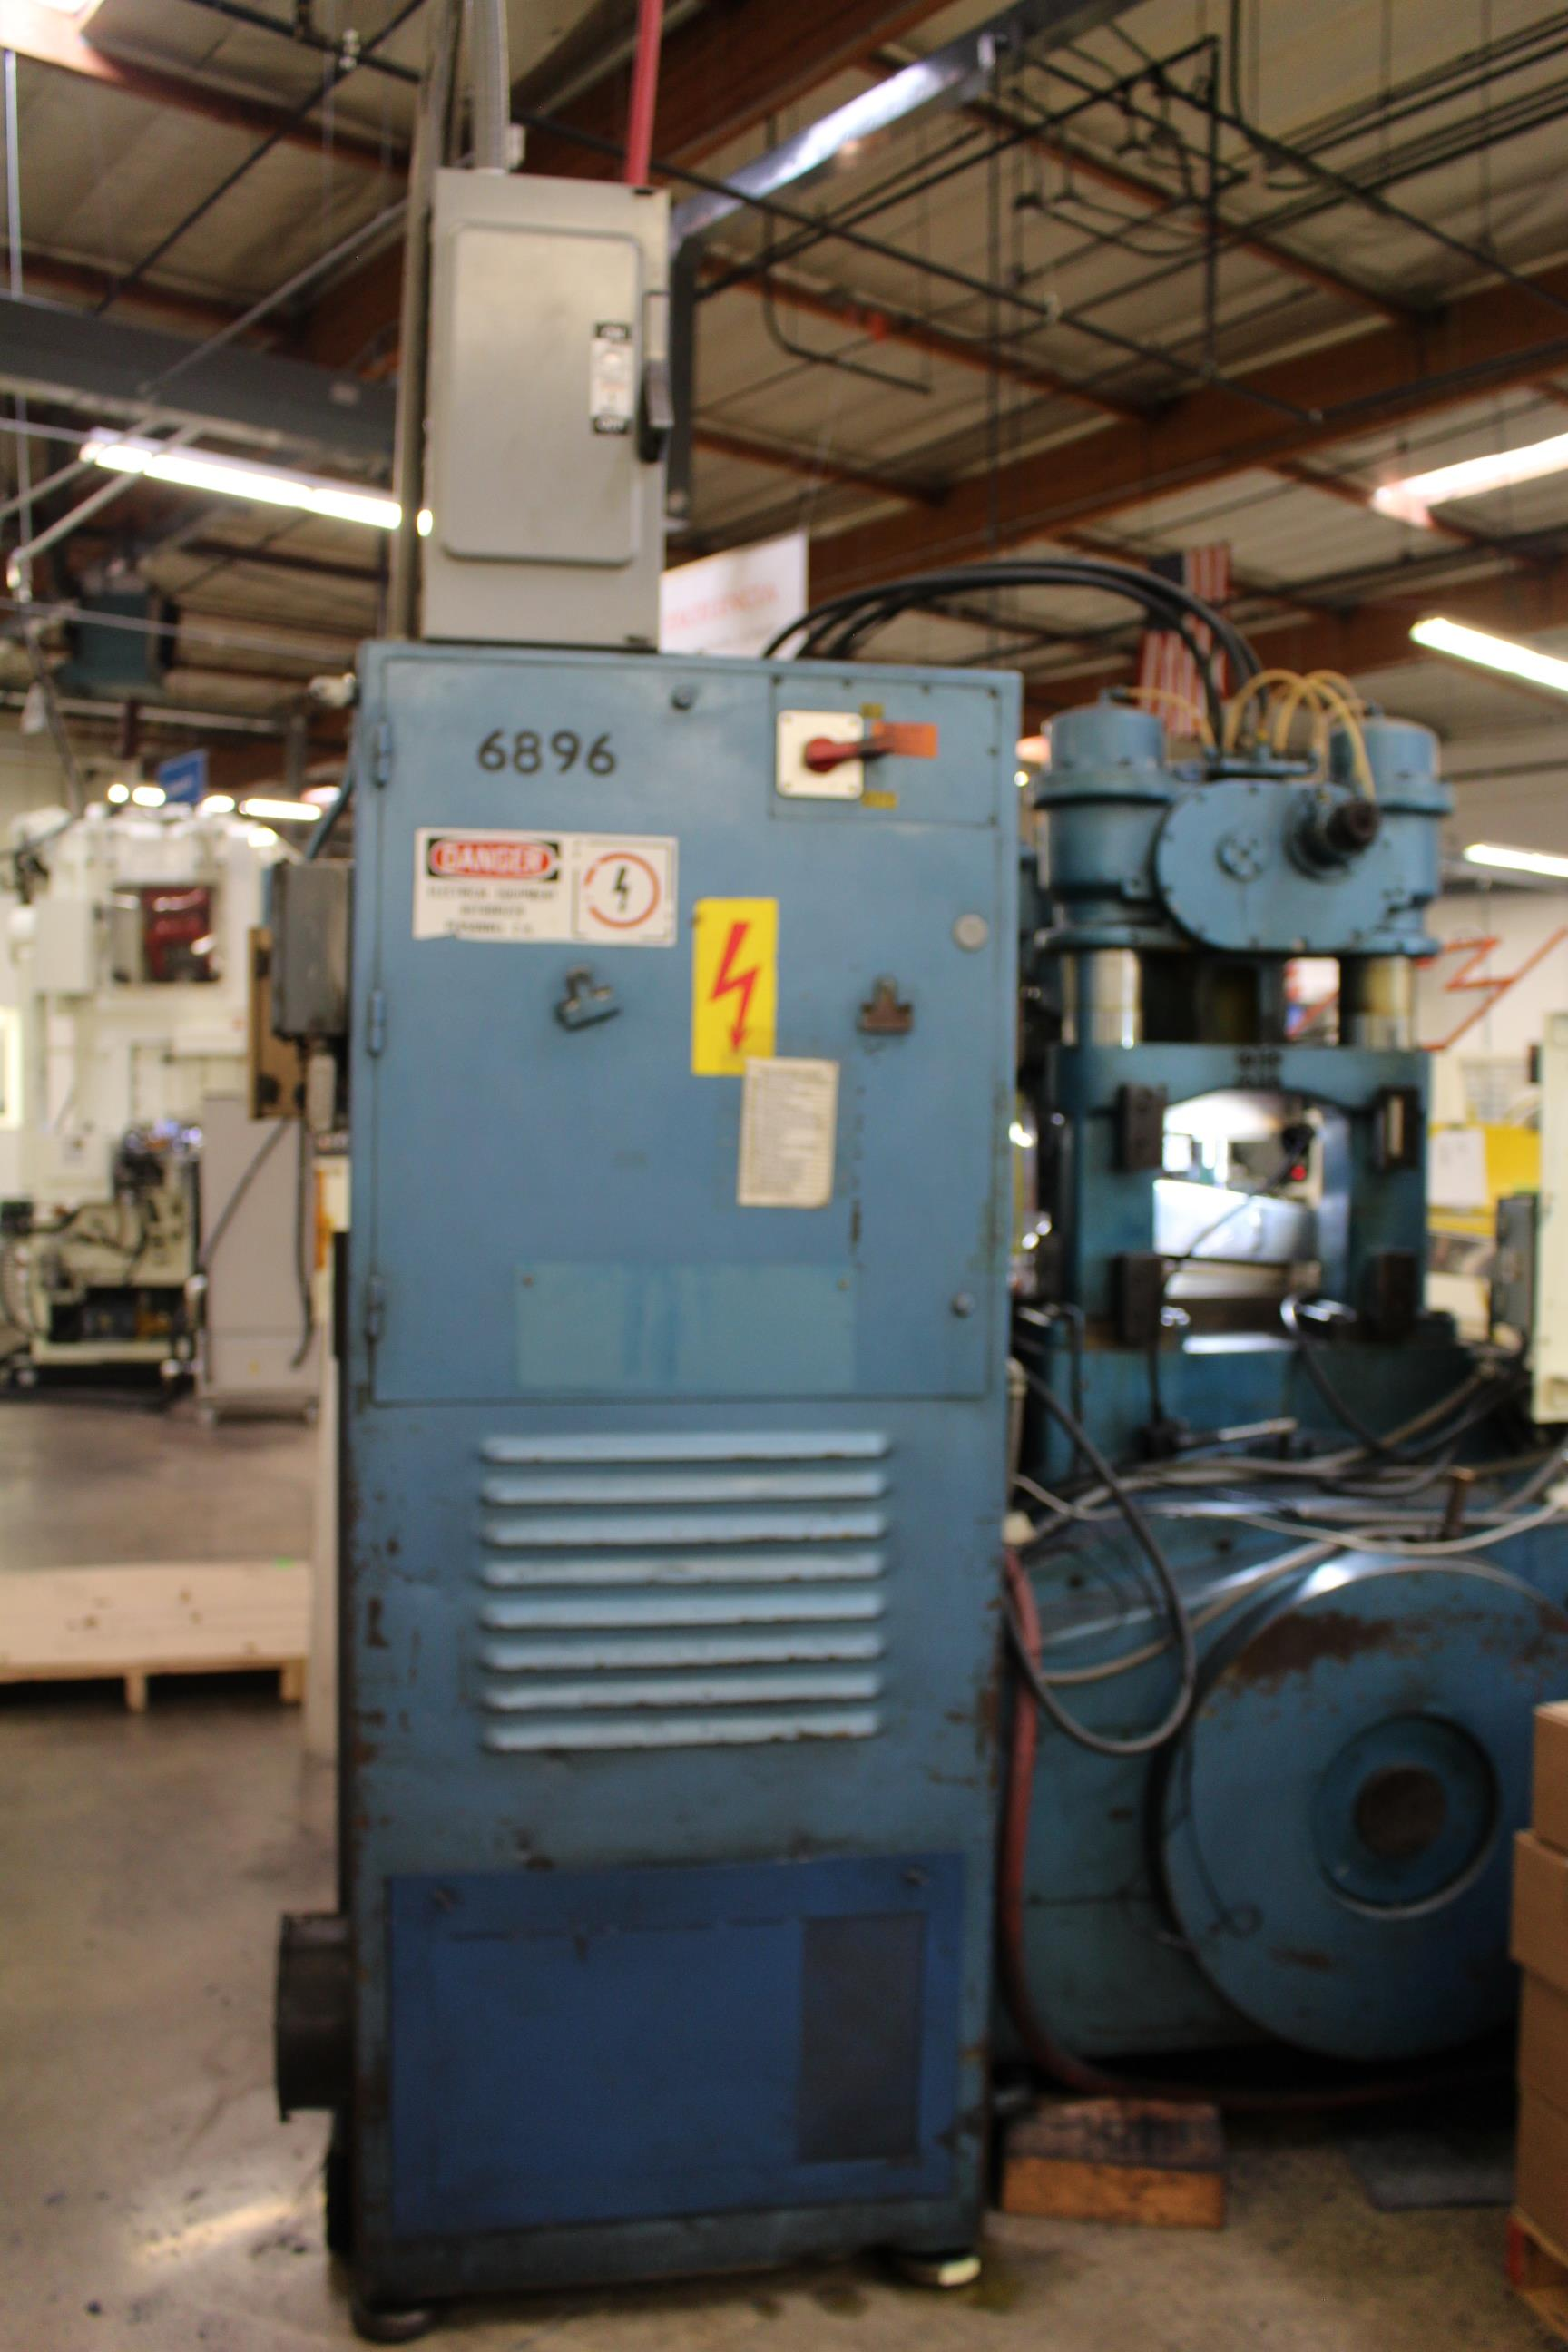 BRUDERER MODEL BSTA-60H HIGH SPEED STAMPING PRESS, 60-TON, DIE PRO 1500 WINTRISS DIE PROTECTION, 4 - Image 9 of 20